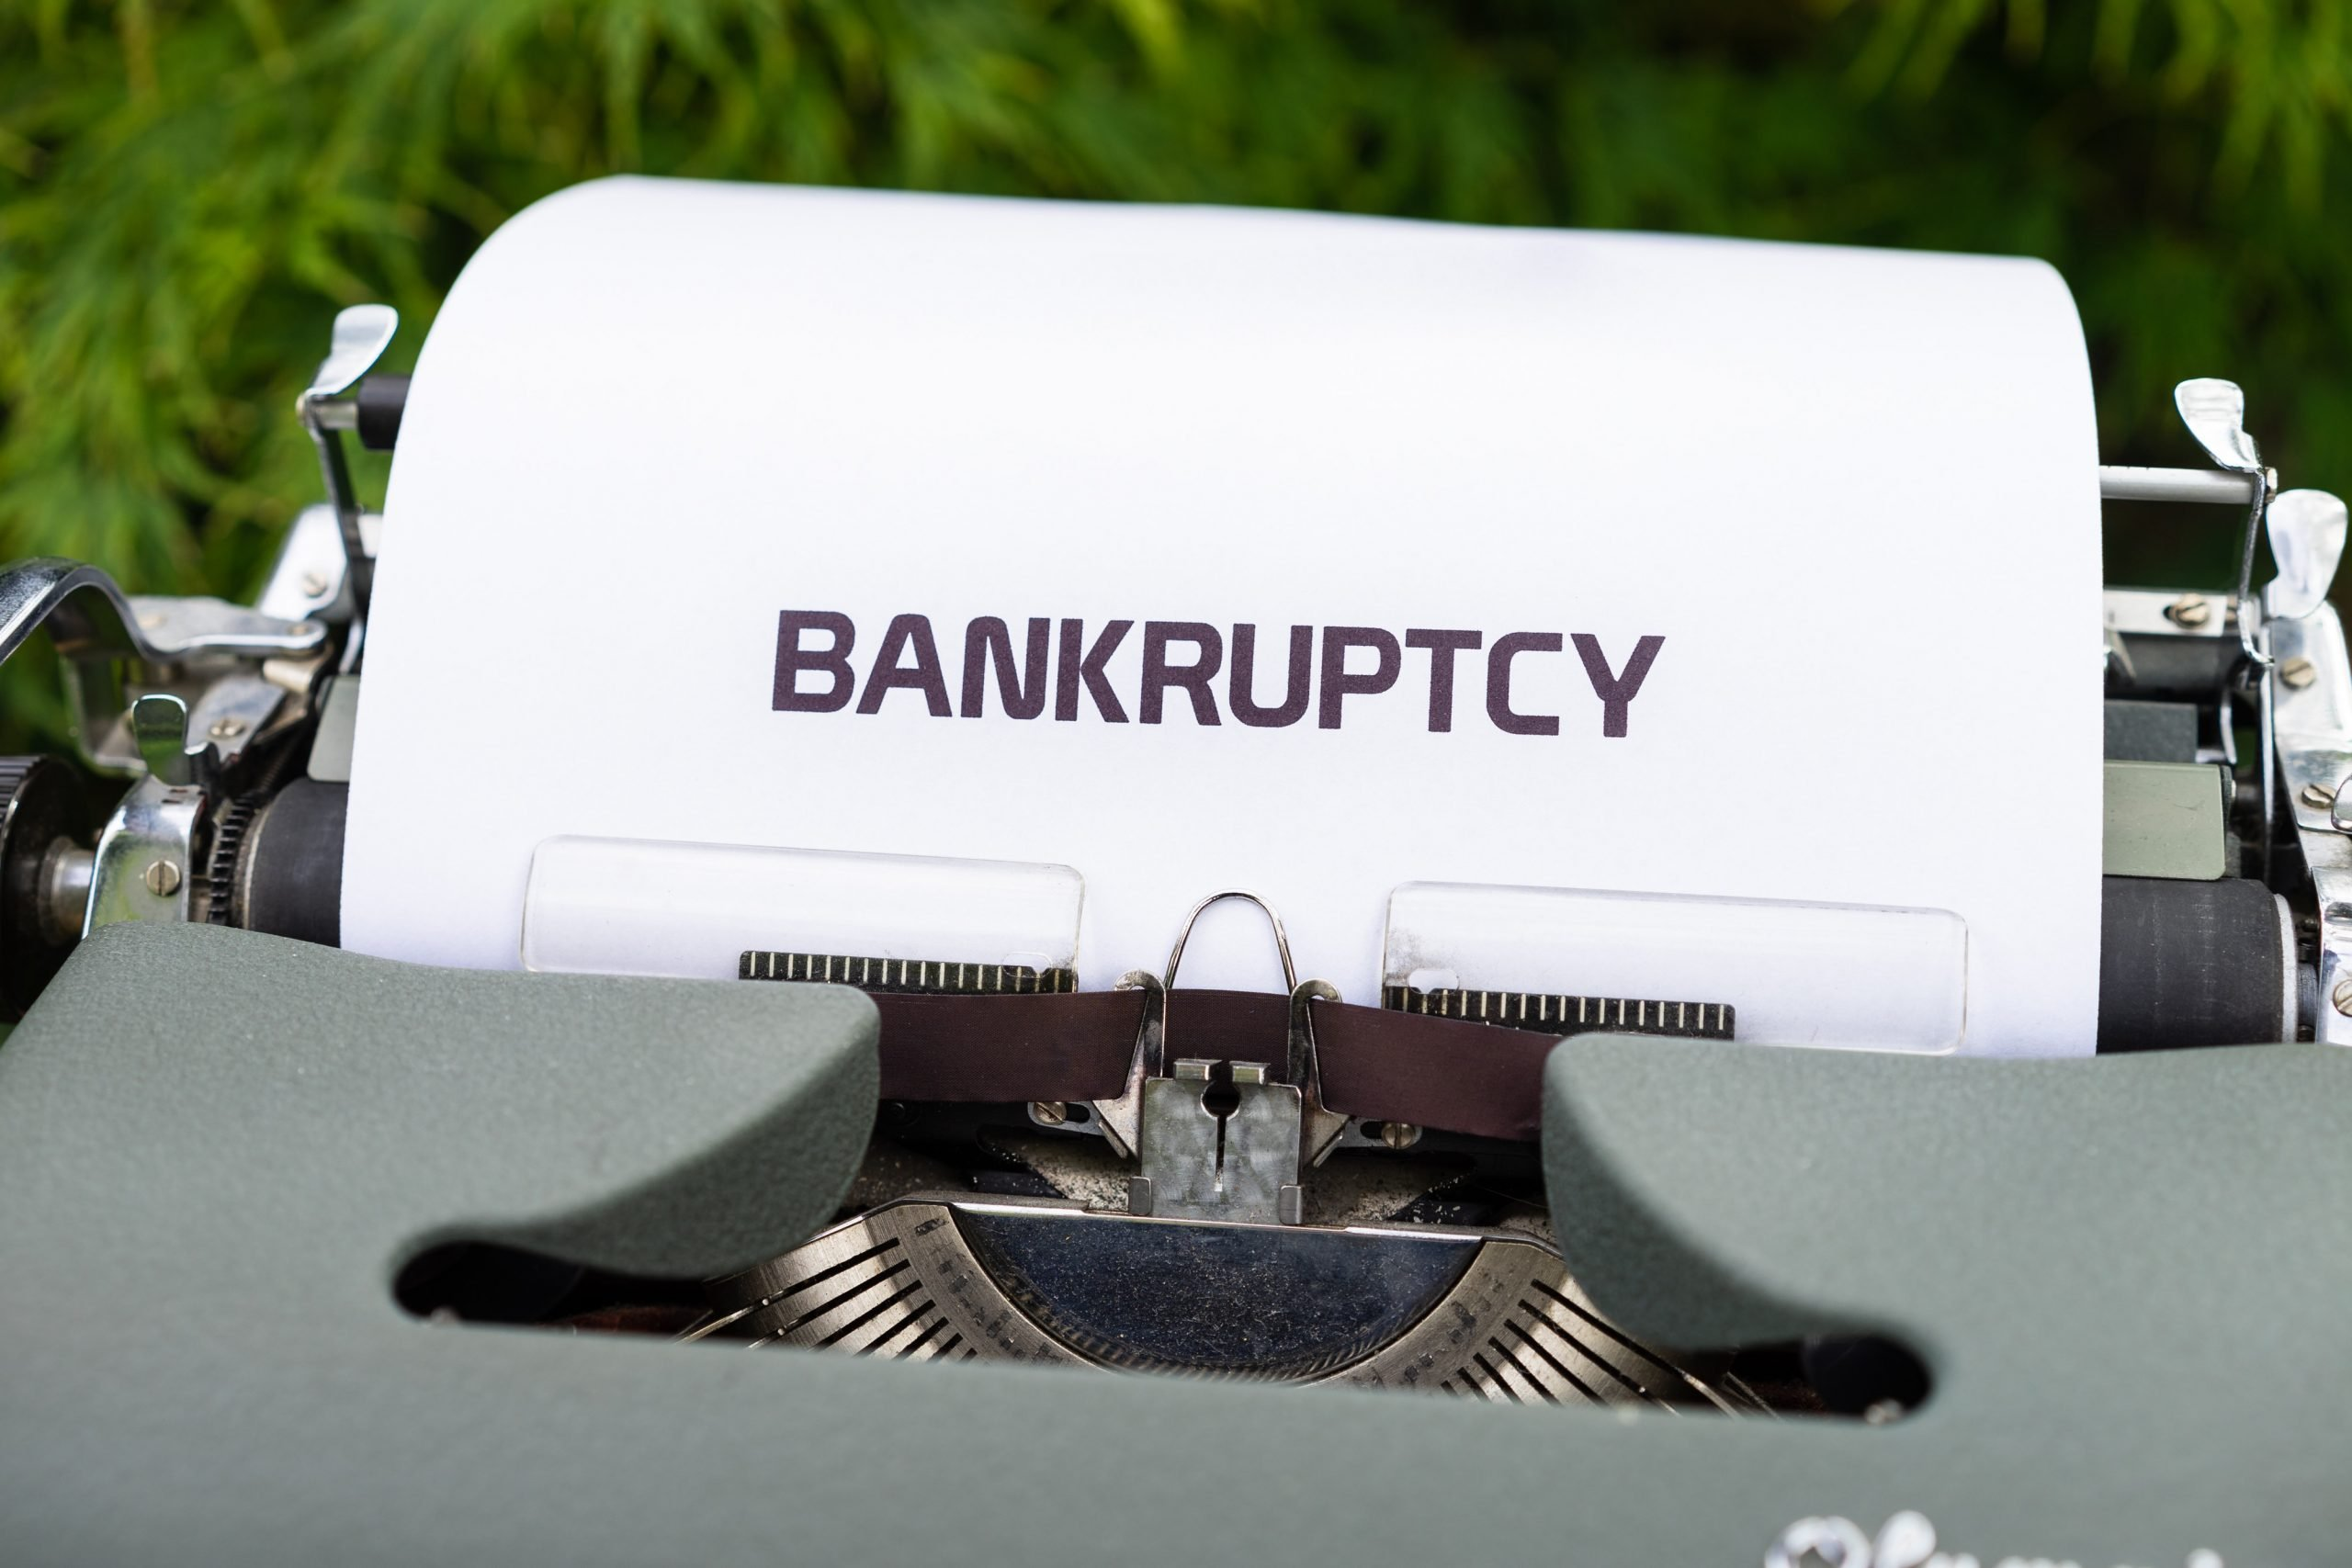 bankruptcy typed out